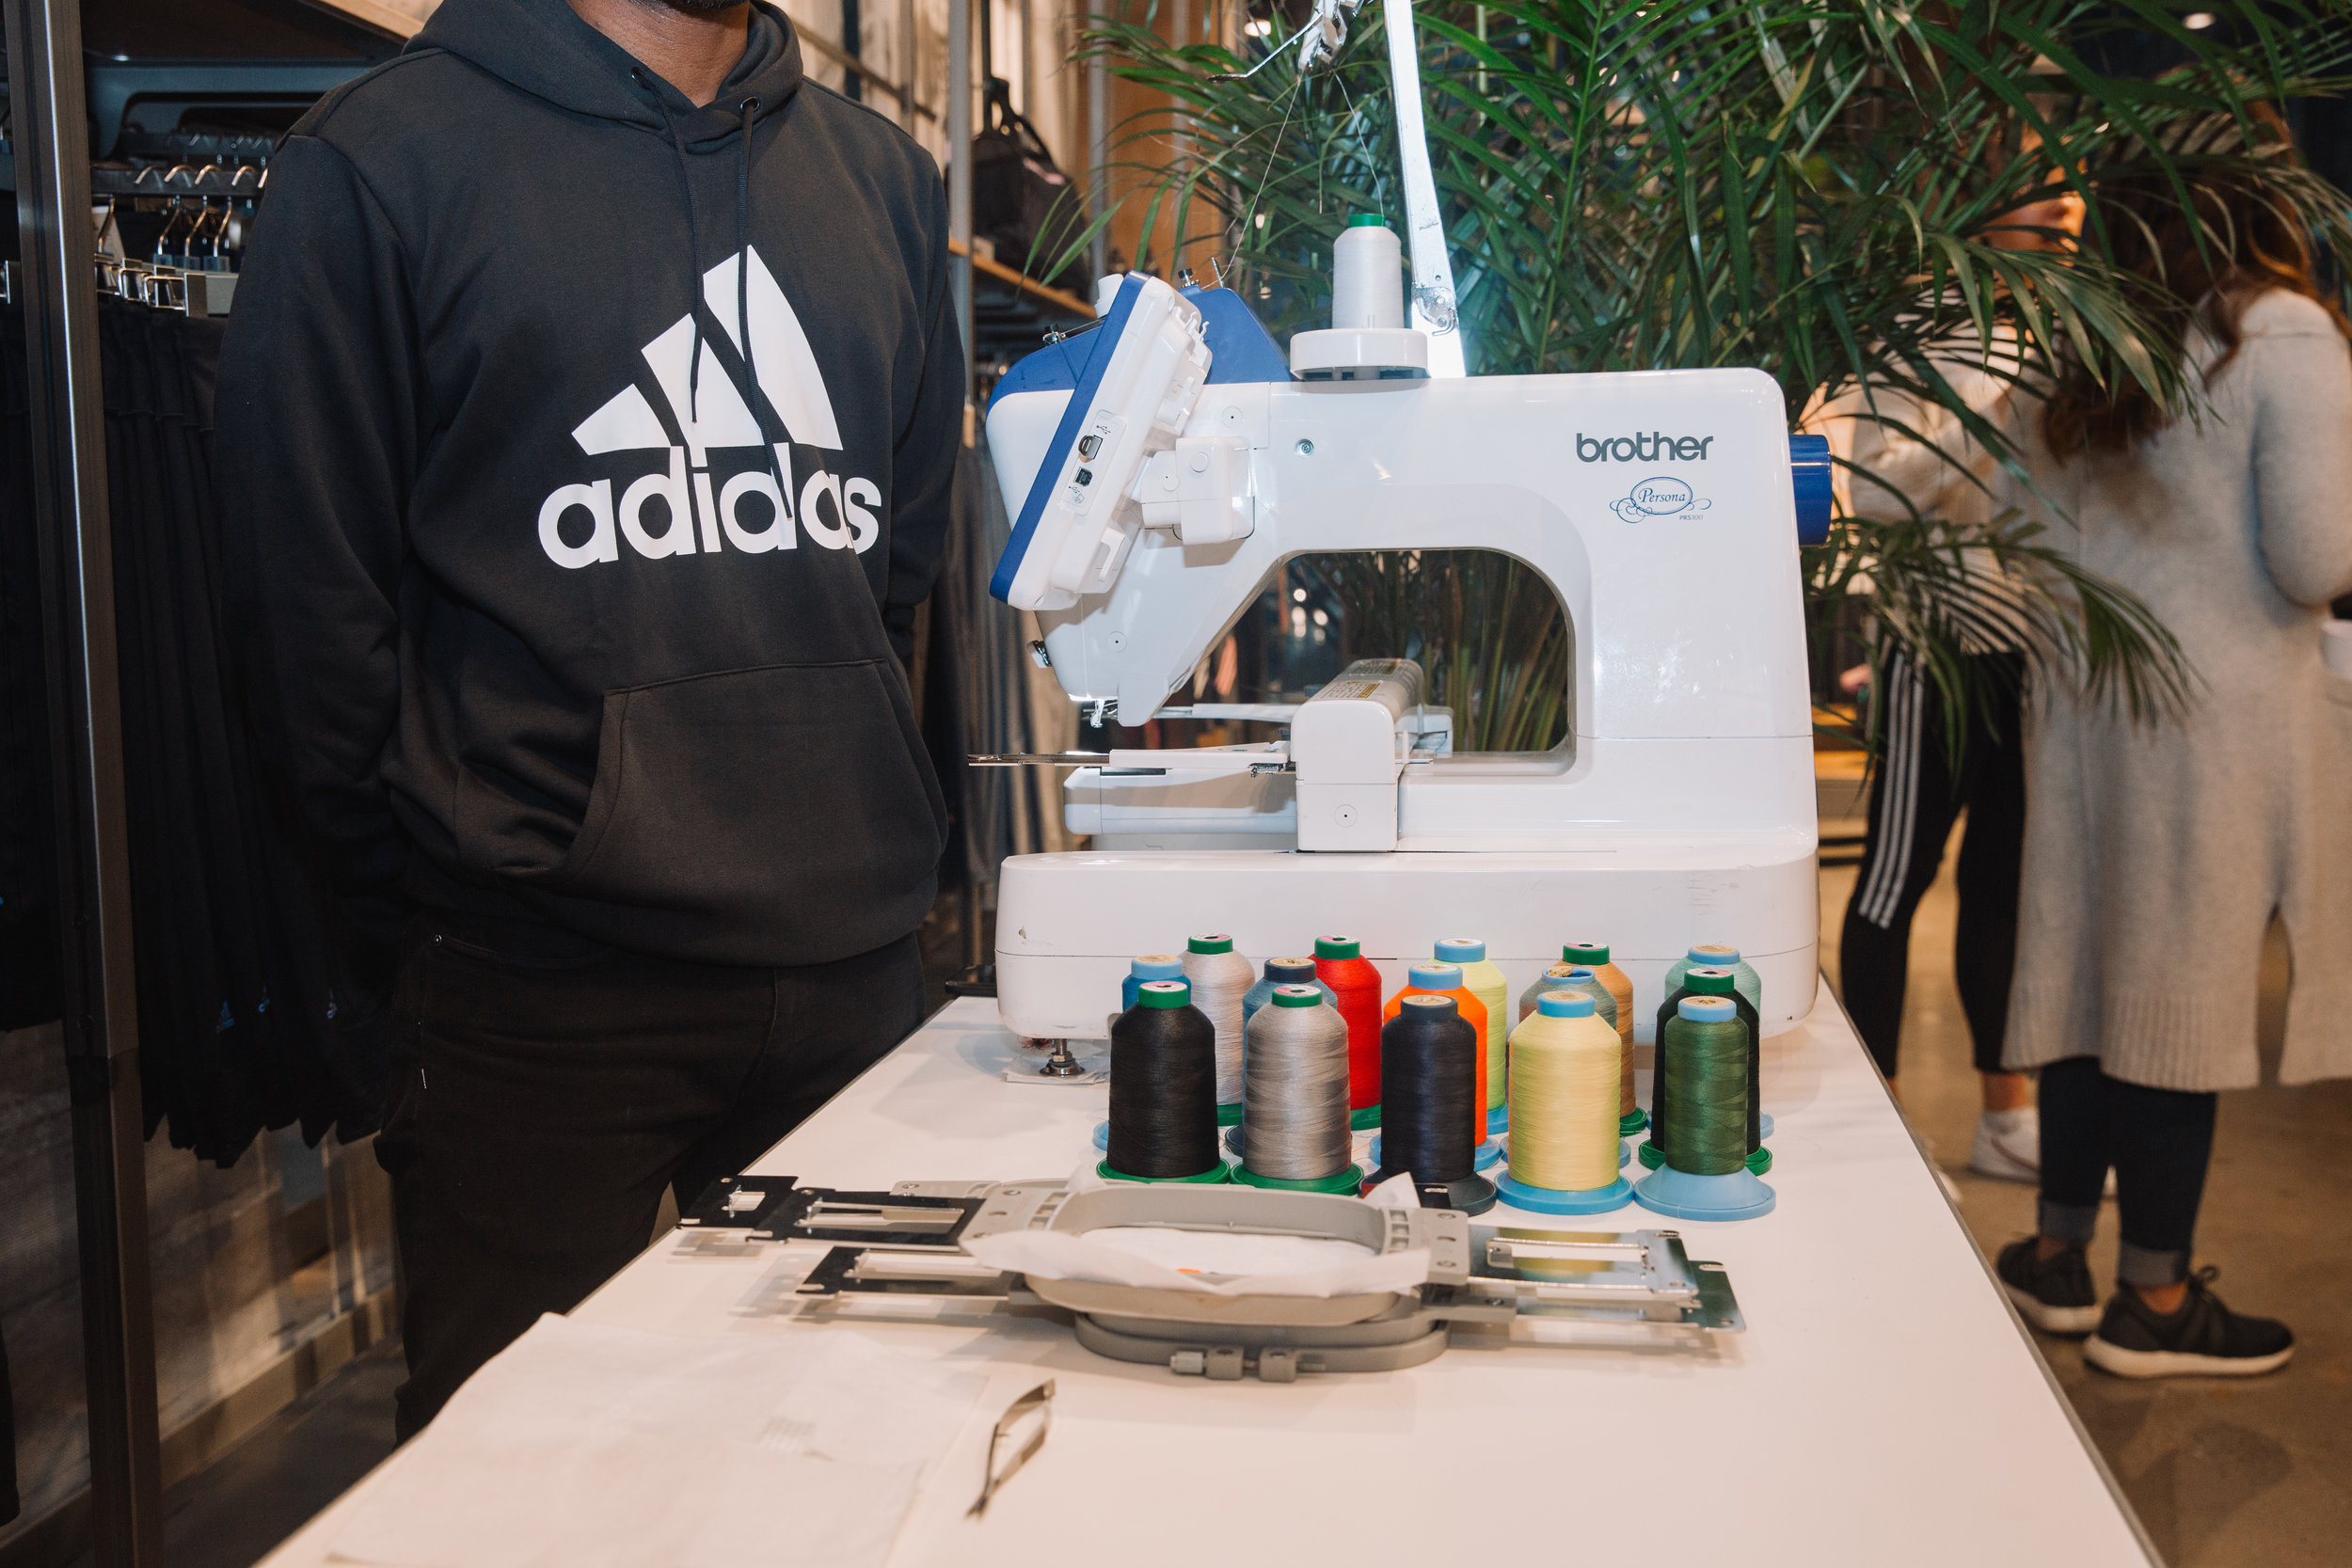 The Adidas team provided complimentary embroidery on any merchandise purchased at the event.